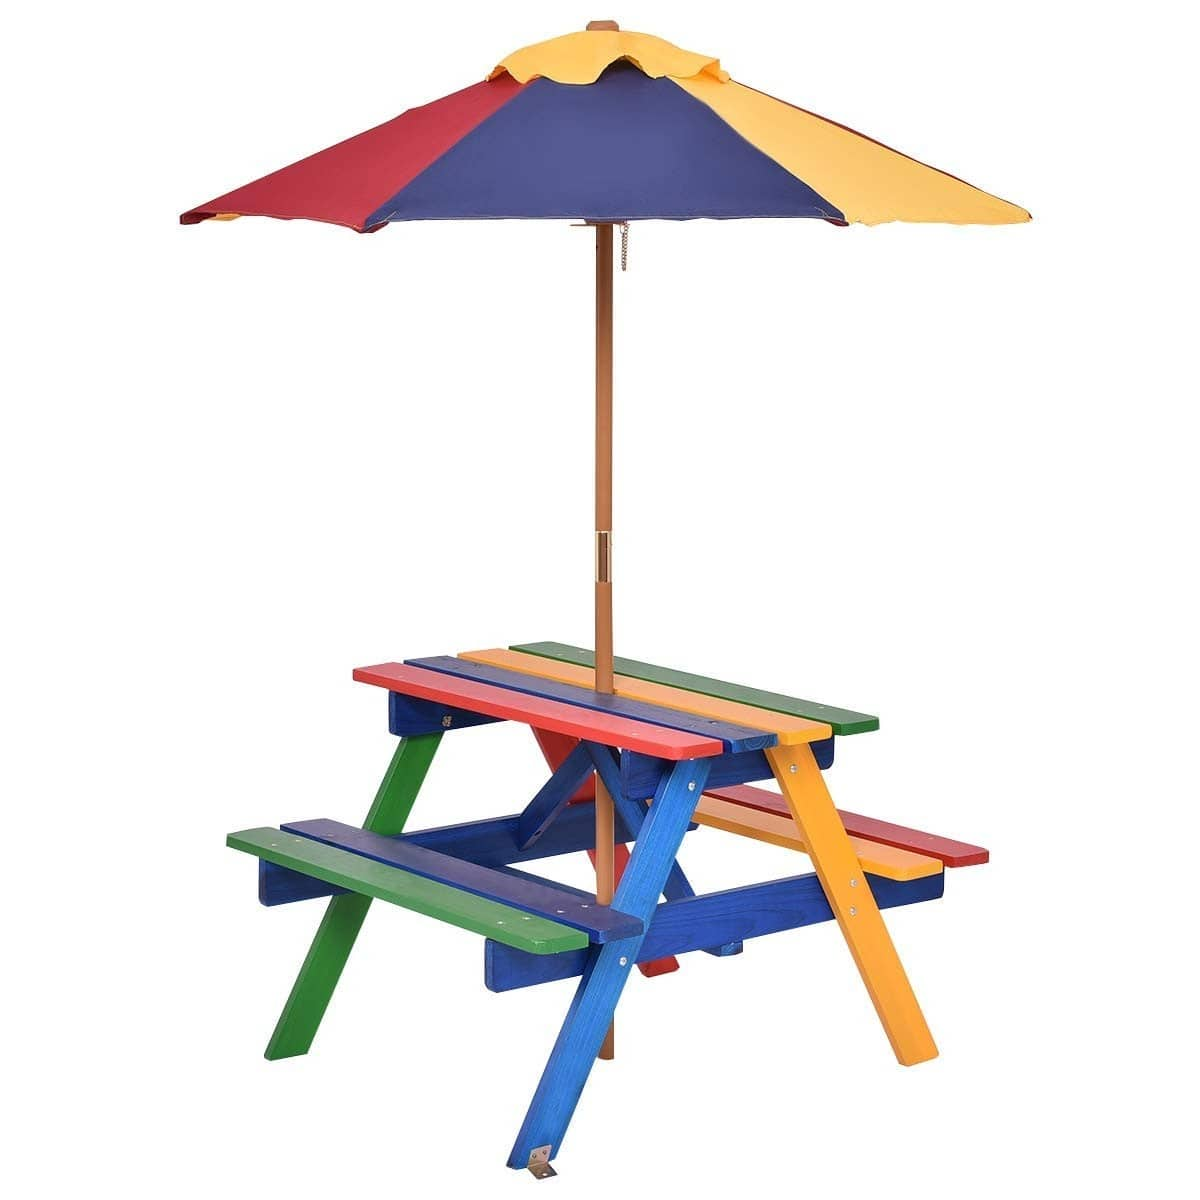 4 Seat Kids Picnic Folding Garden Umbrella Table - $54.95 + Free Shipping